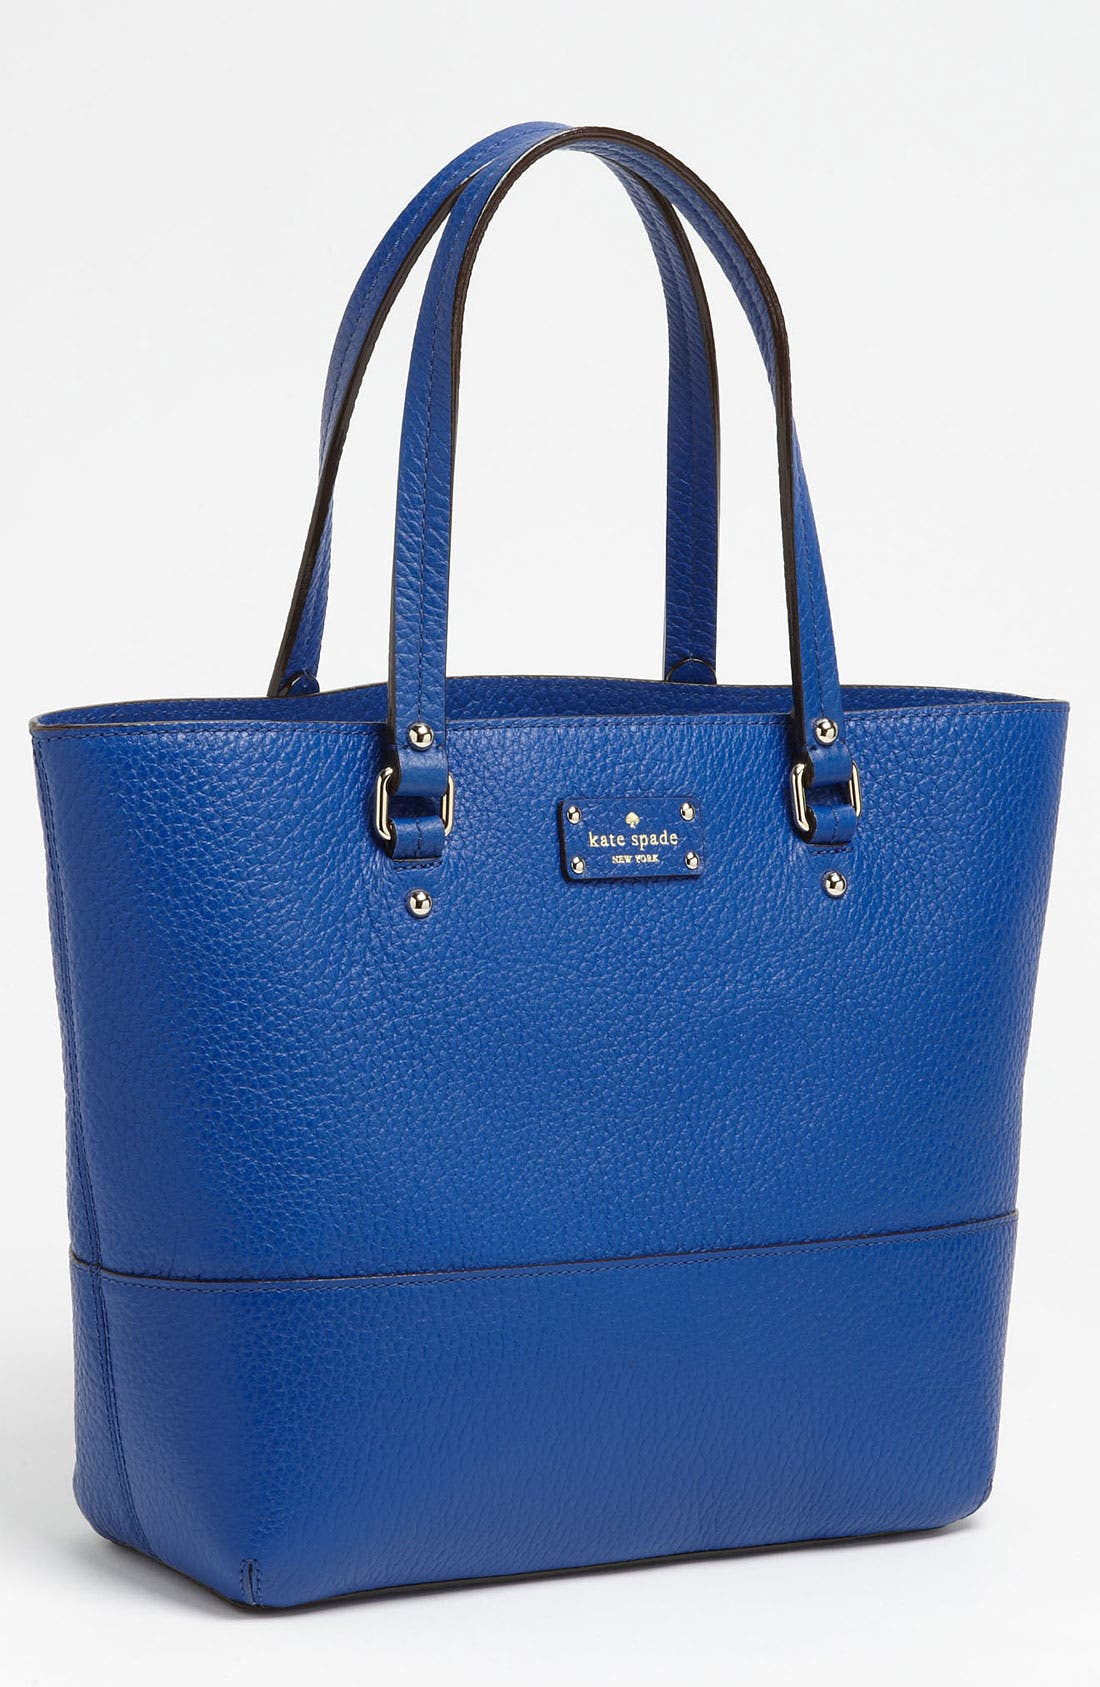 Main Image - kate spade new york 'grove court abela' shoulder bag